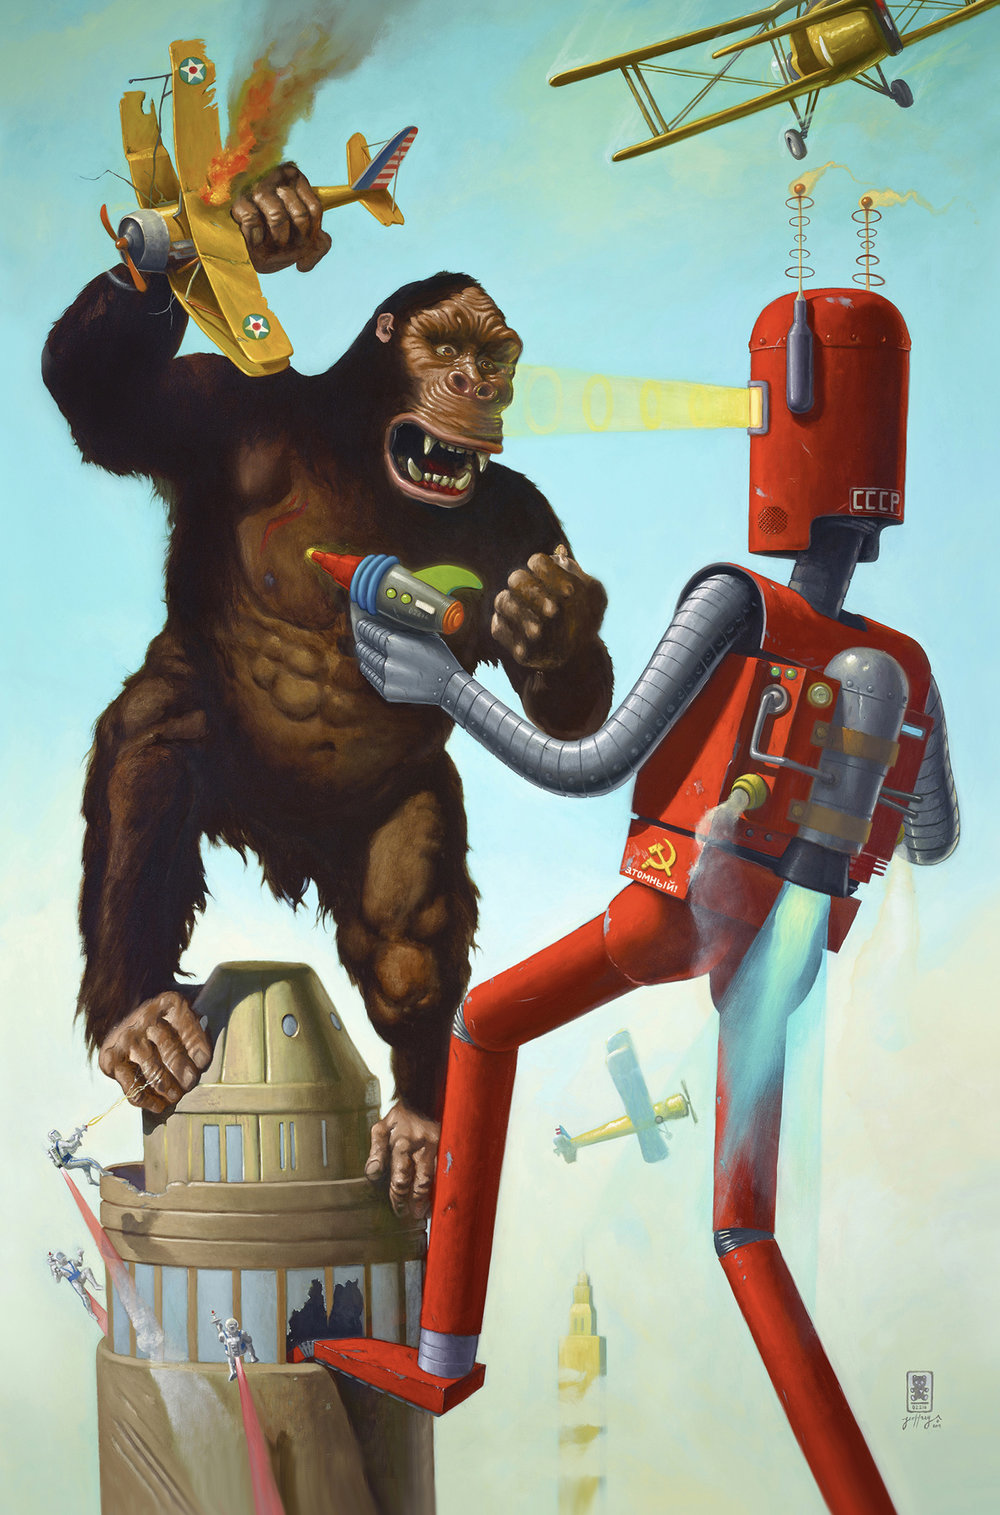 King Kong vs The Atomic Robot